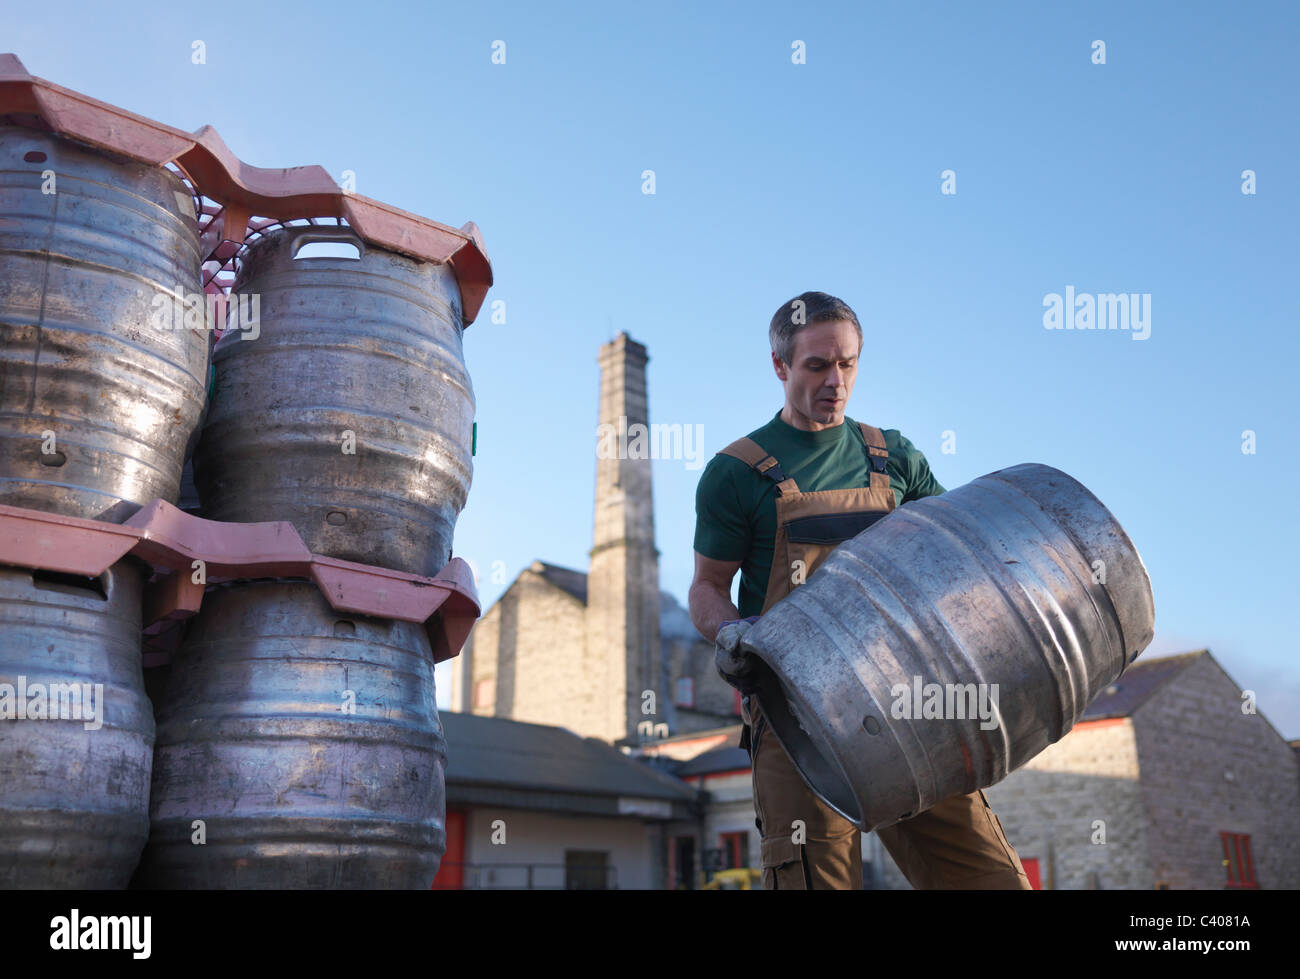 Worker carrying barrel outside brewery - Stock Image